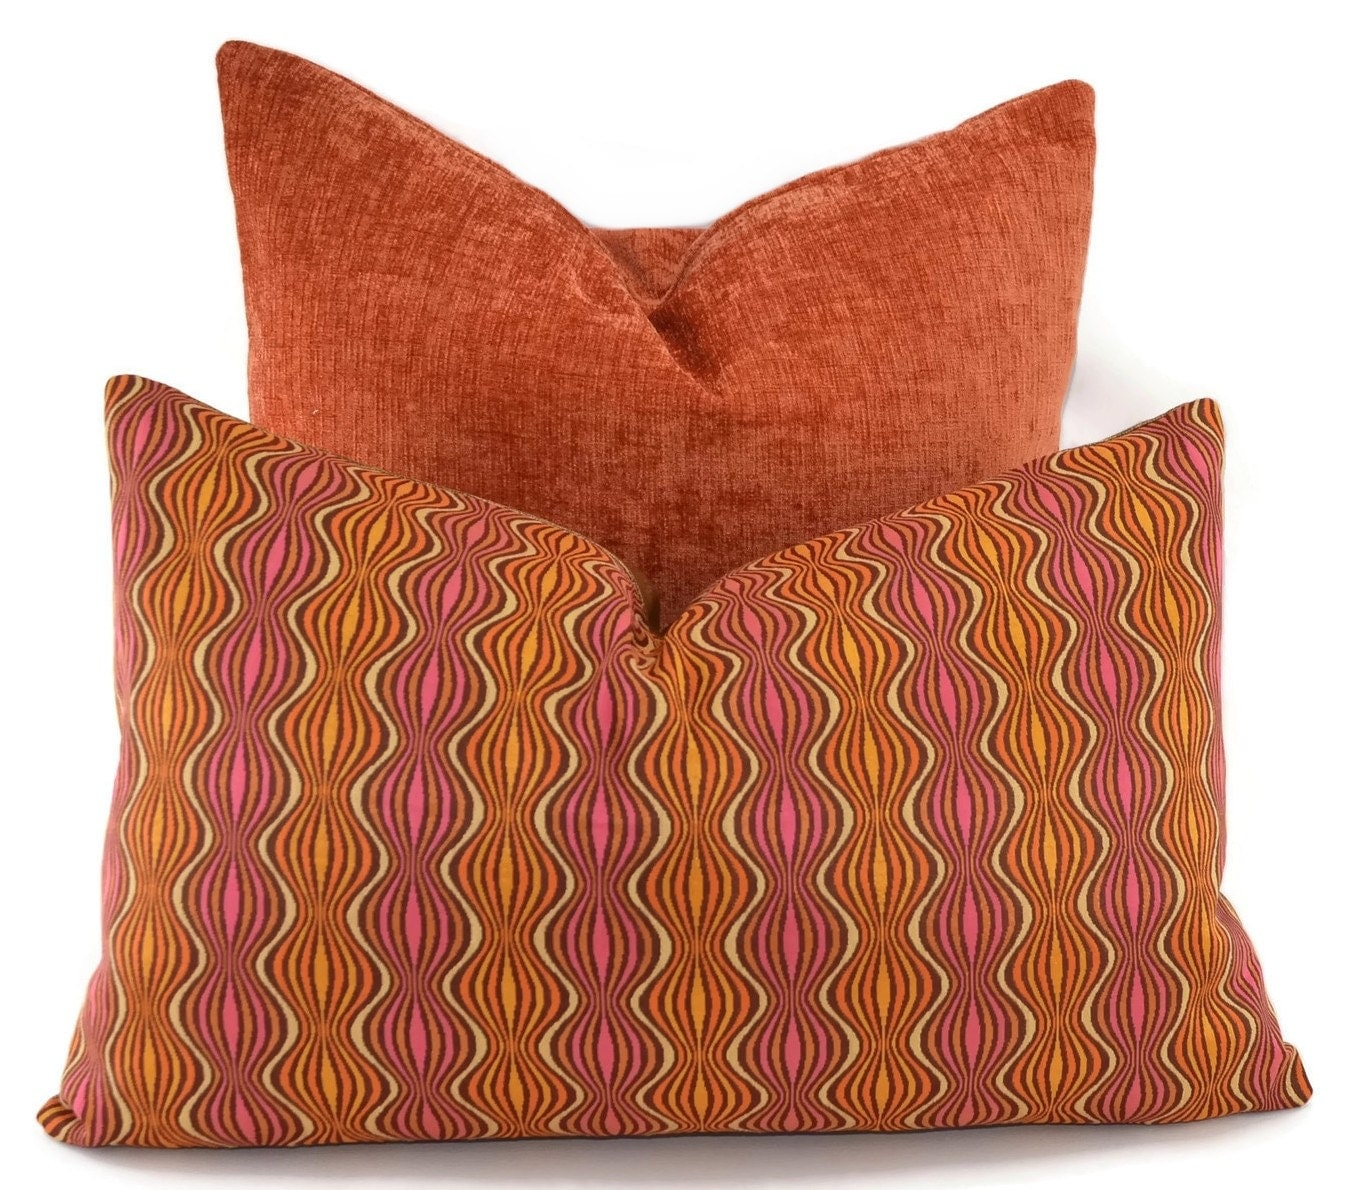 CLEARANCE Throw Pillow Cover Mid-Century Modern Design